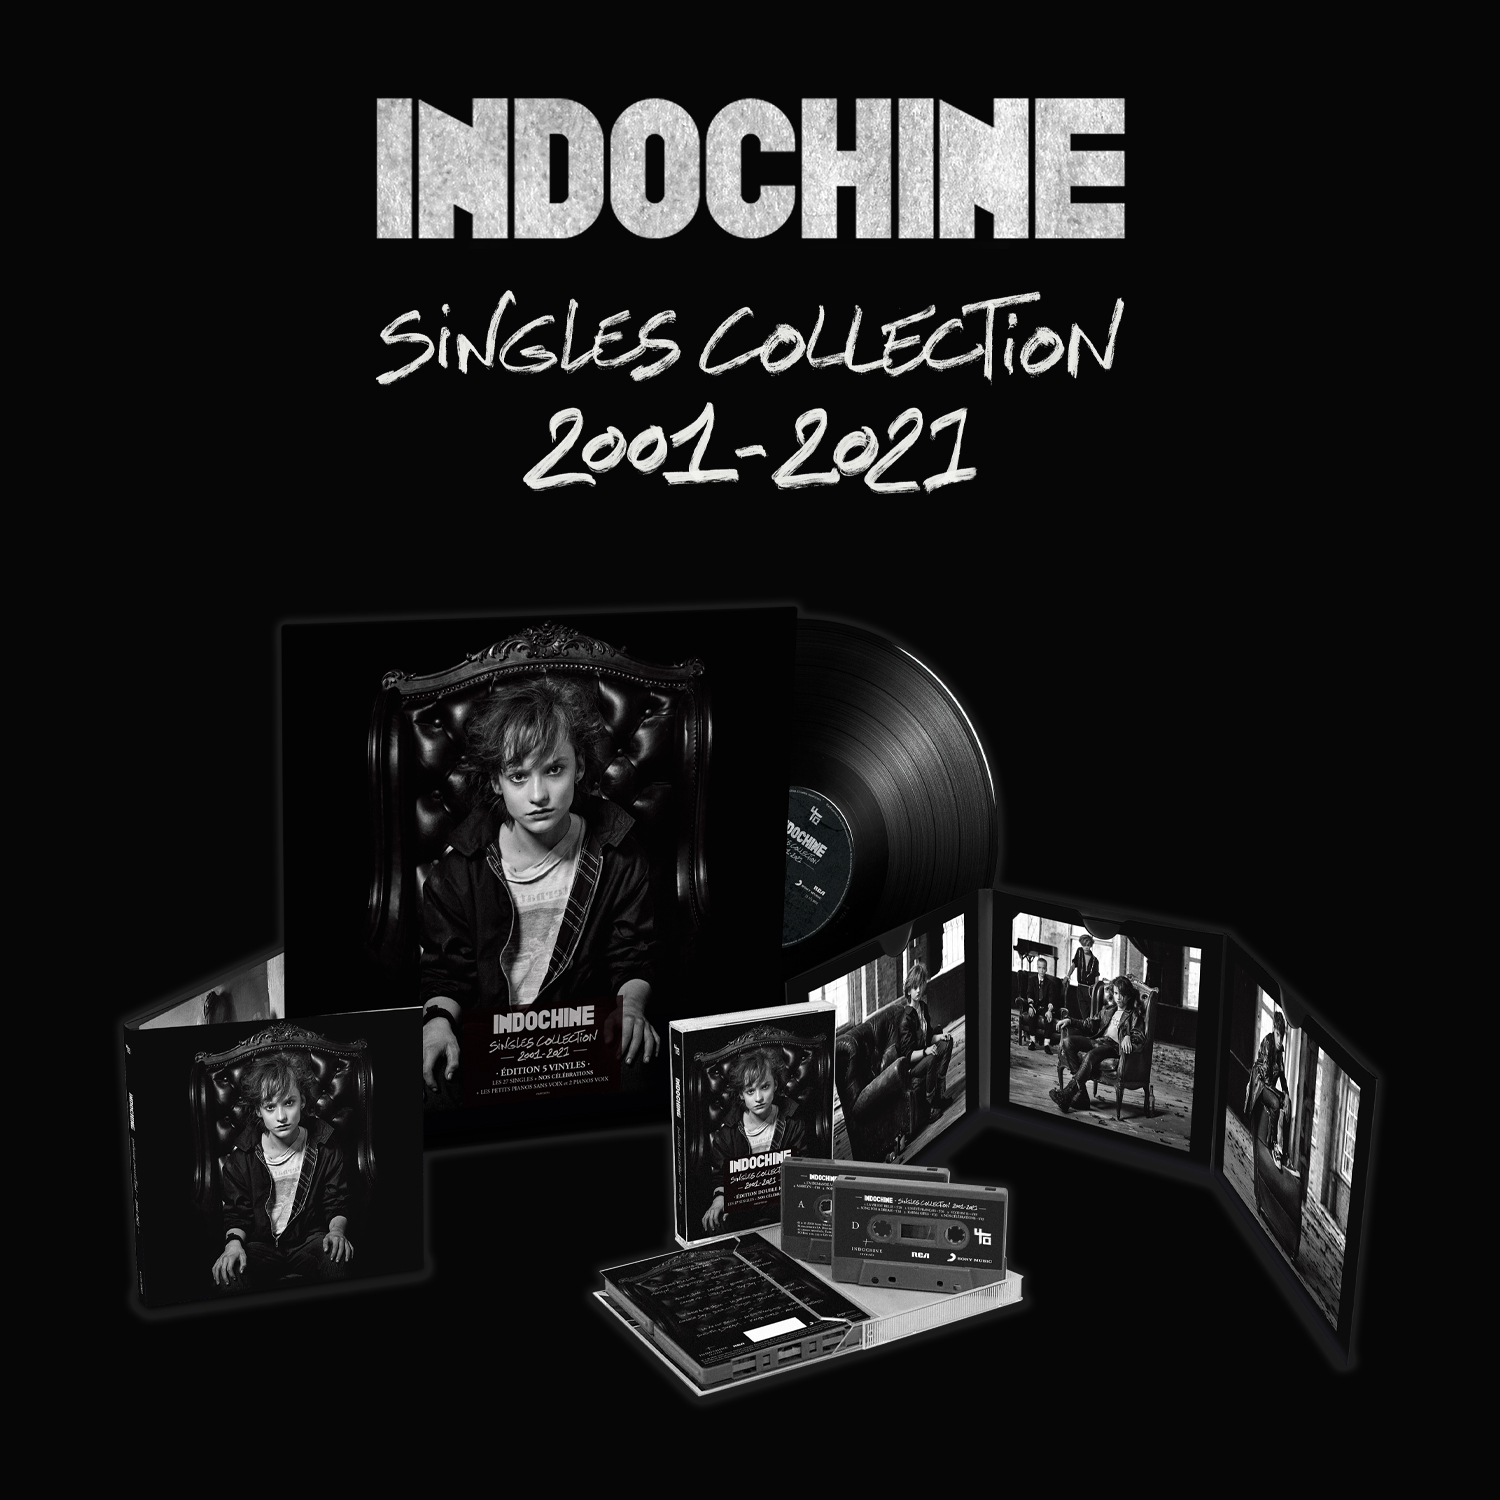 Indochine - 40 ans - Singles collection